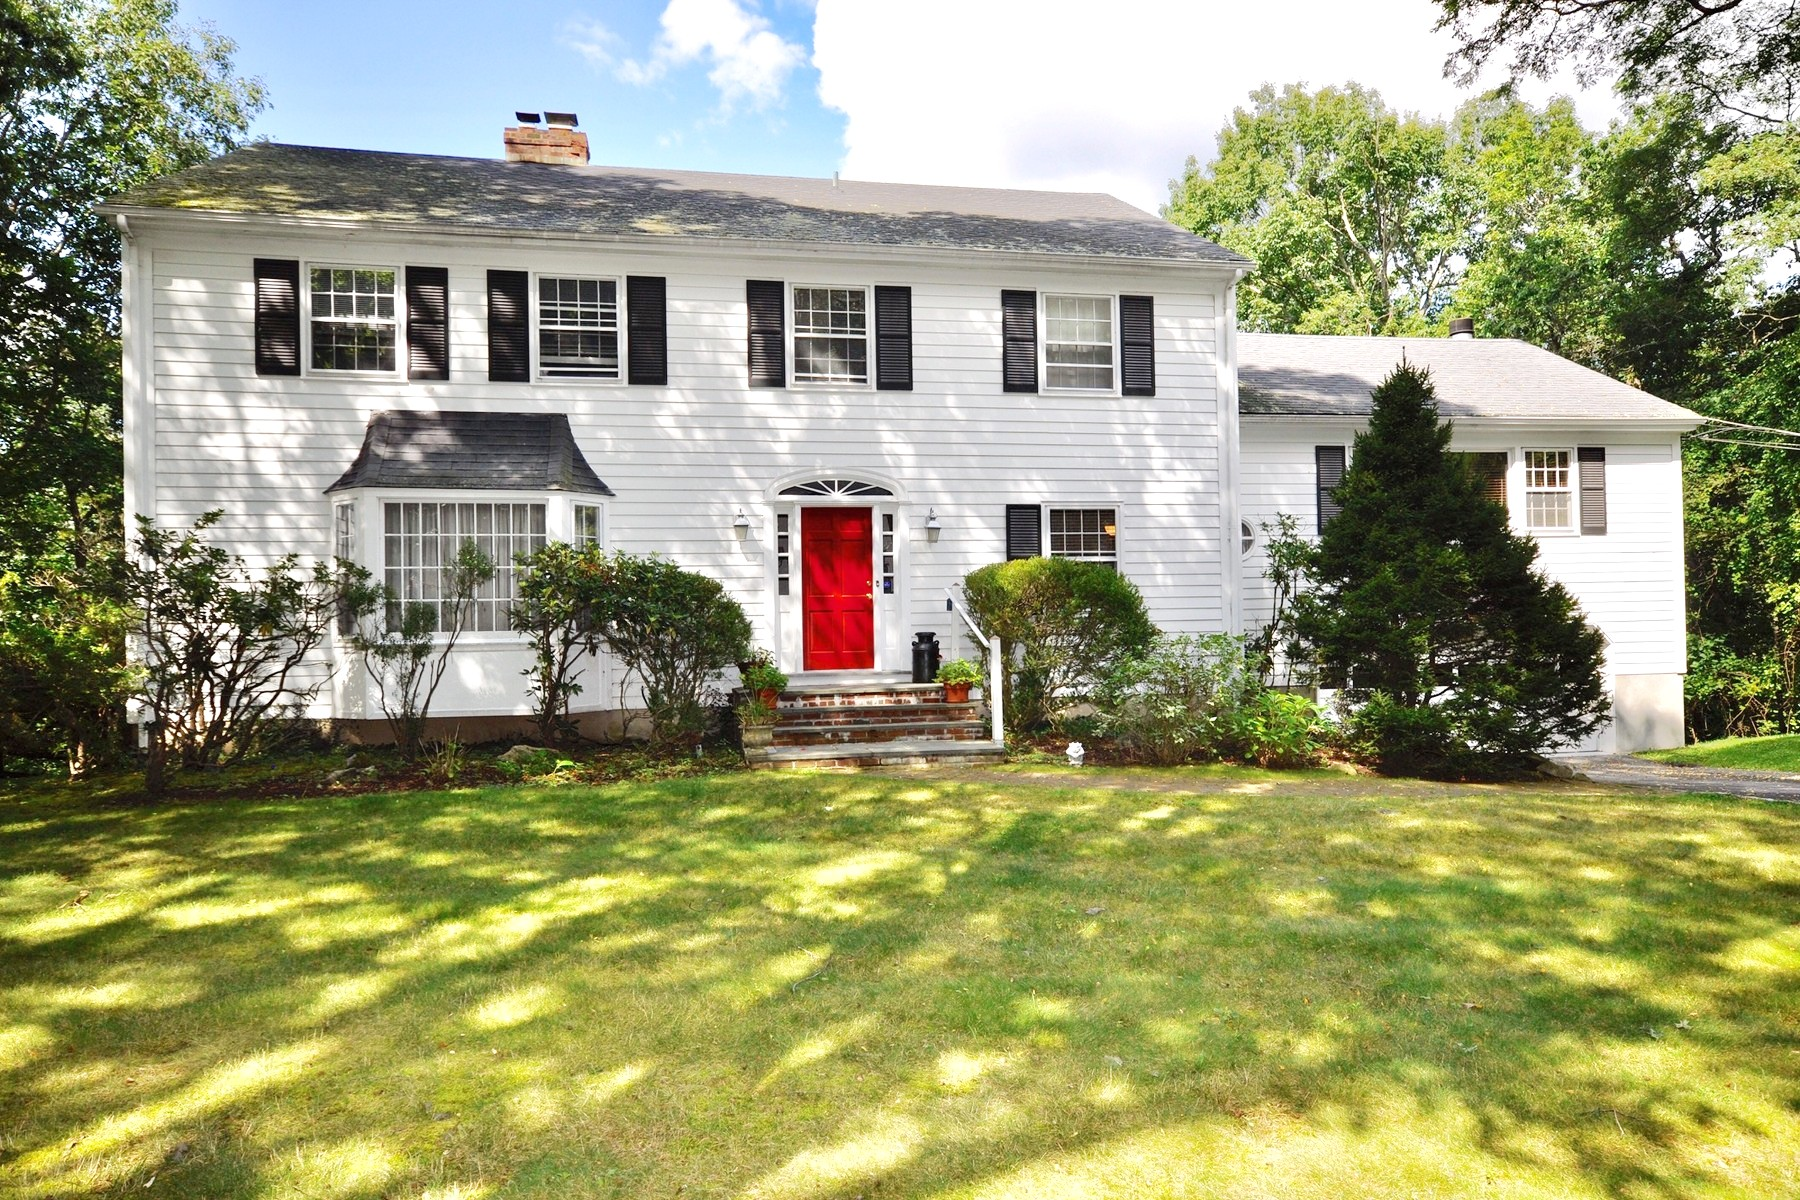 Single Family Homes for Sale at Lawrence Farms East Colonial 19 Kitchel Rd Mount Kisco, New York 10549 United States